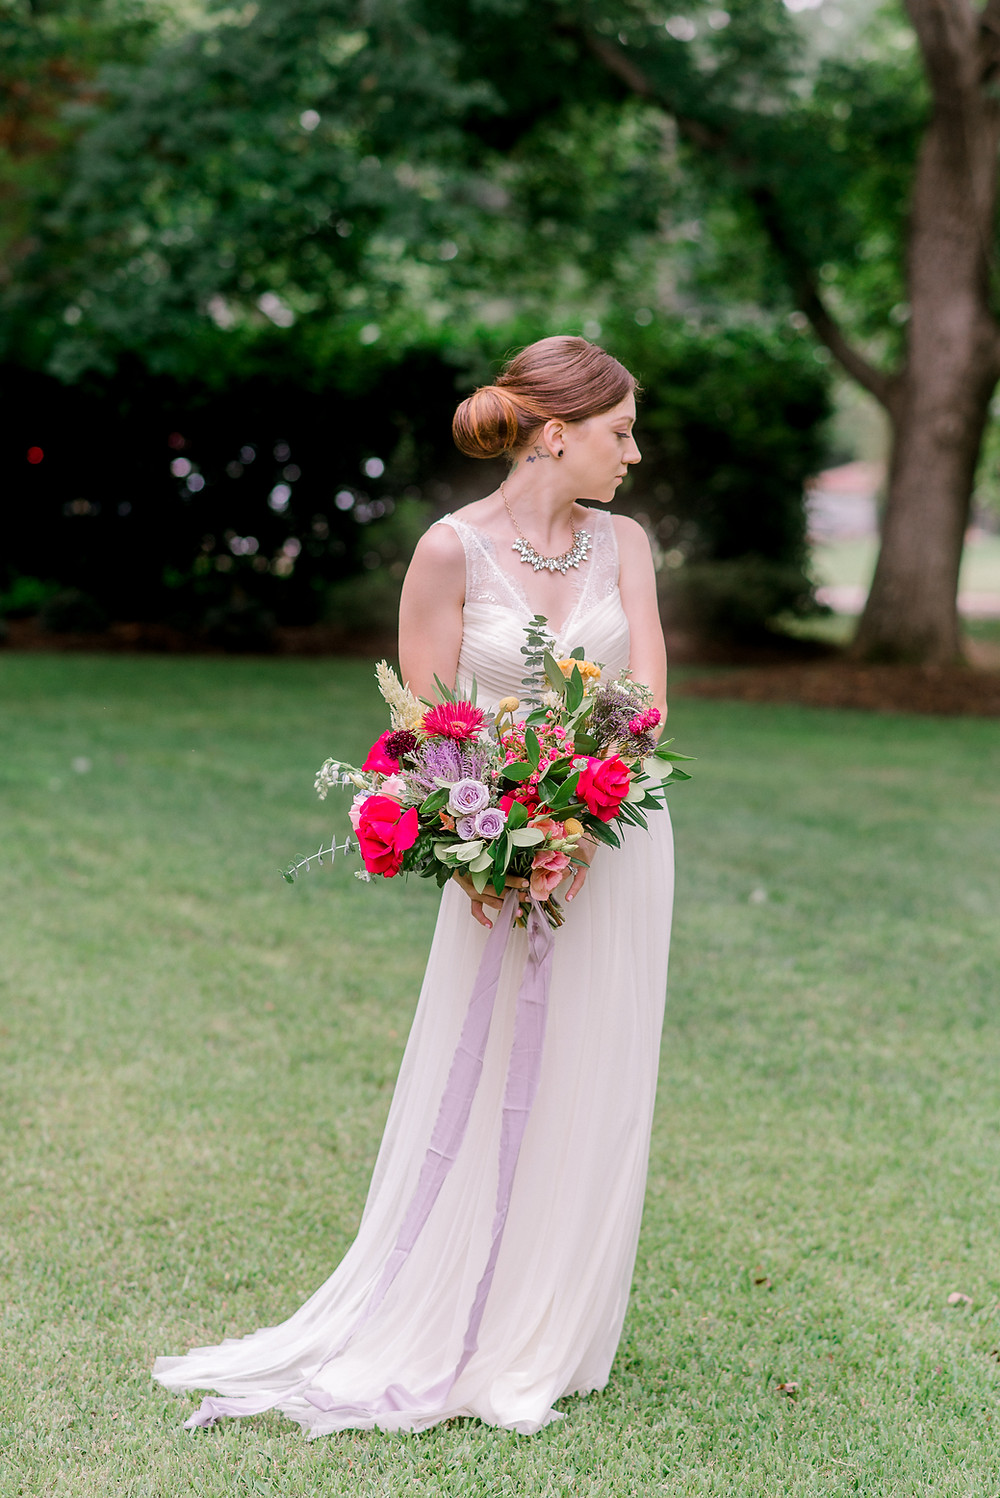 Nina Bashaw Photography is a St. Pete elopement and wedding photographer